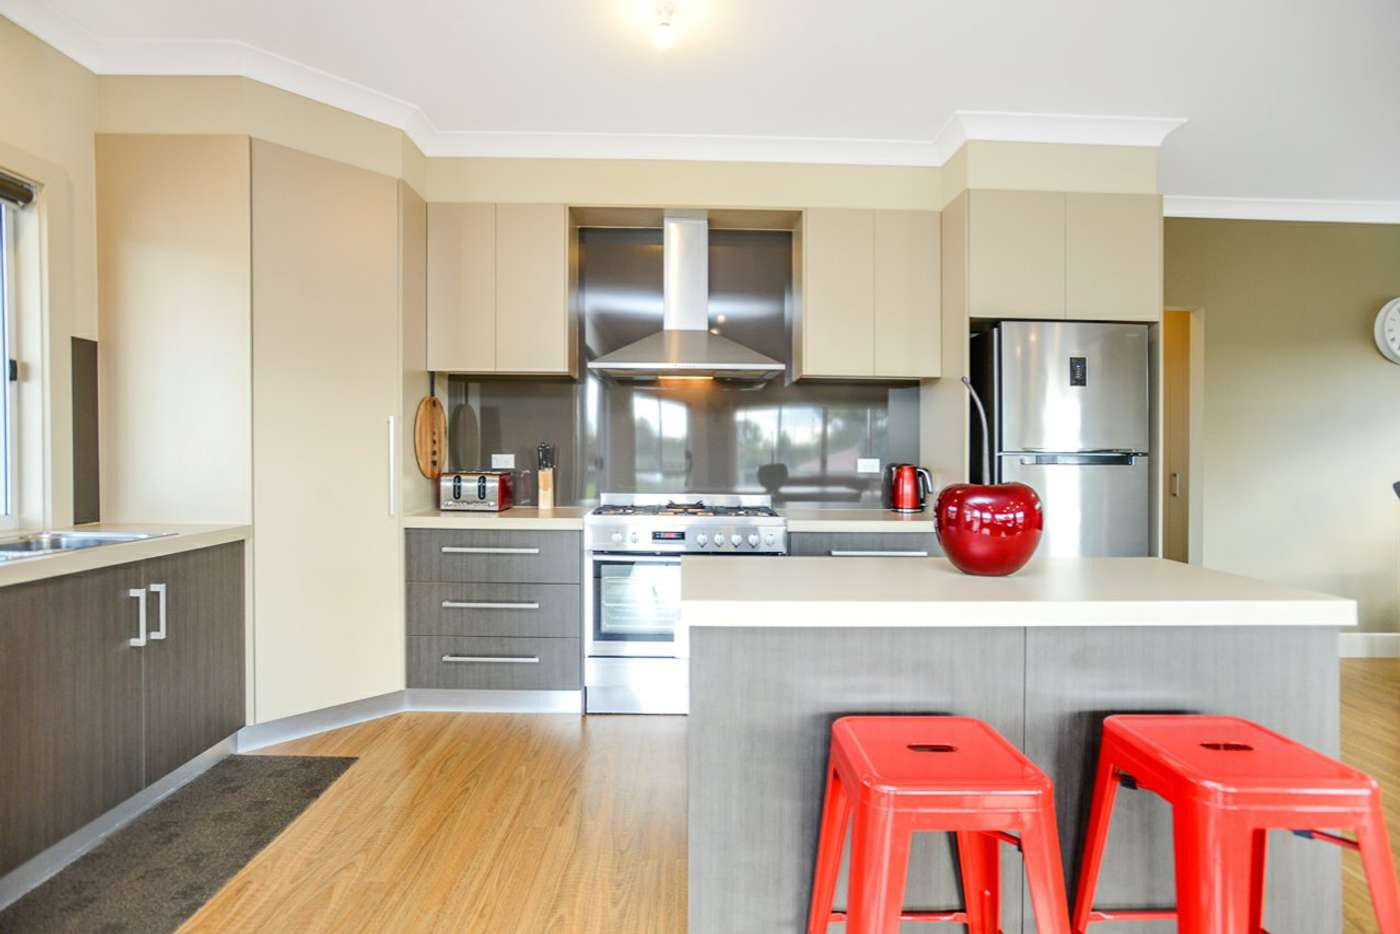 Sixth view of Homely house listing, 7A Tabernacle Road, Encounter Bay SA 5211